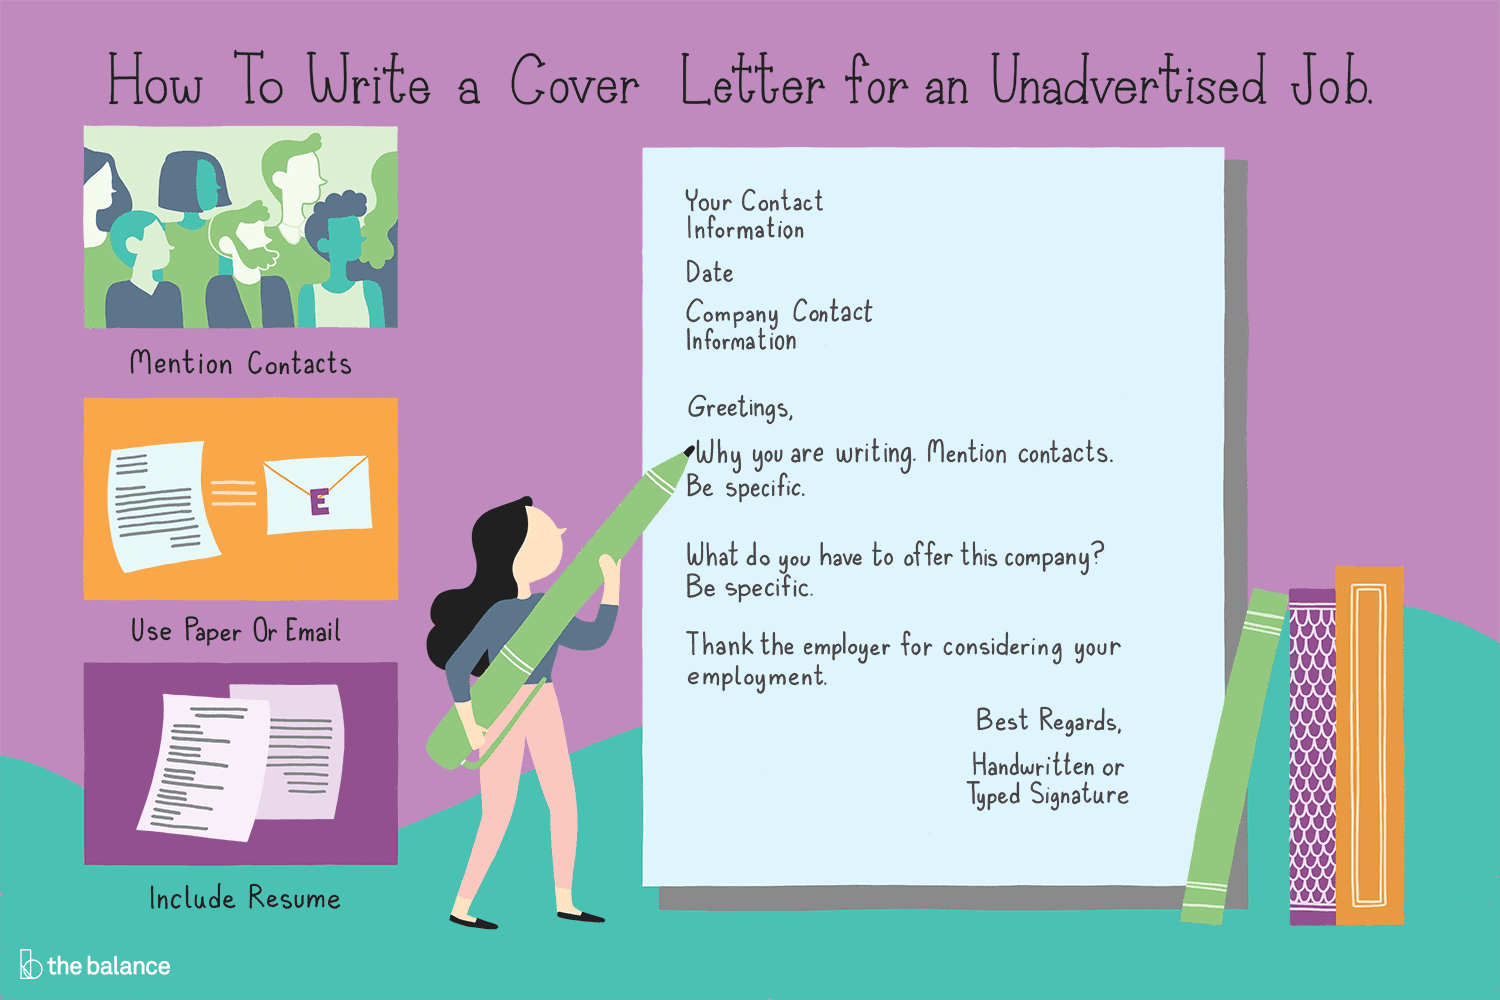 Tips For Writing A Cover Letter An Unadvertised Job